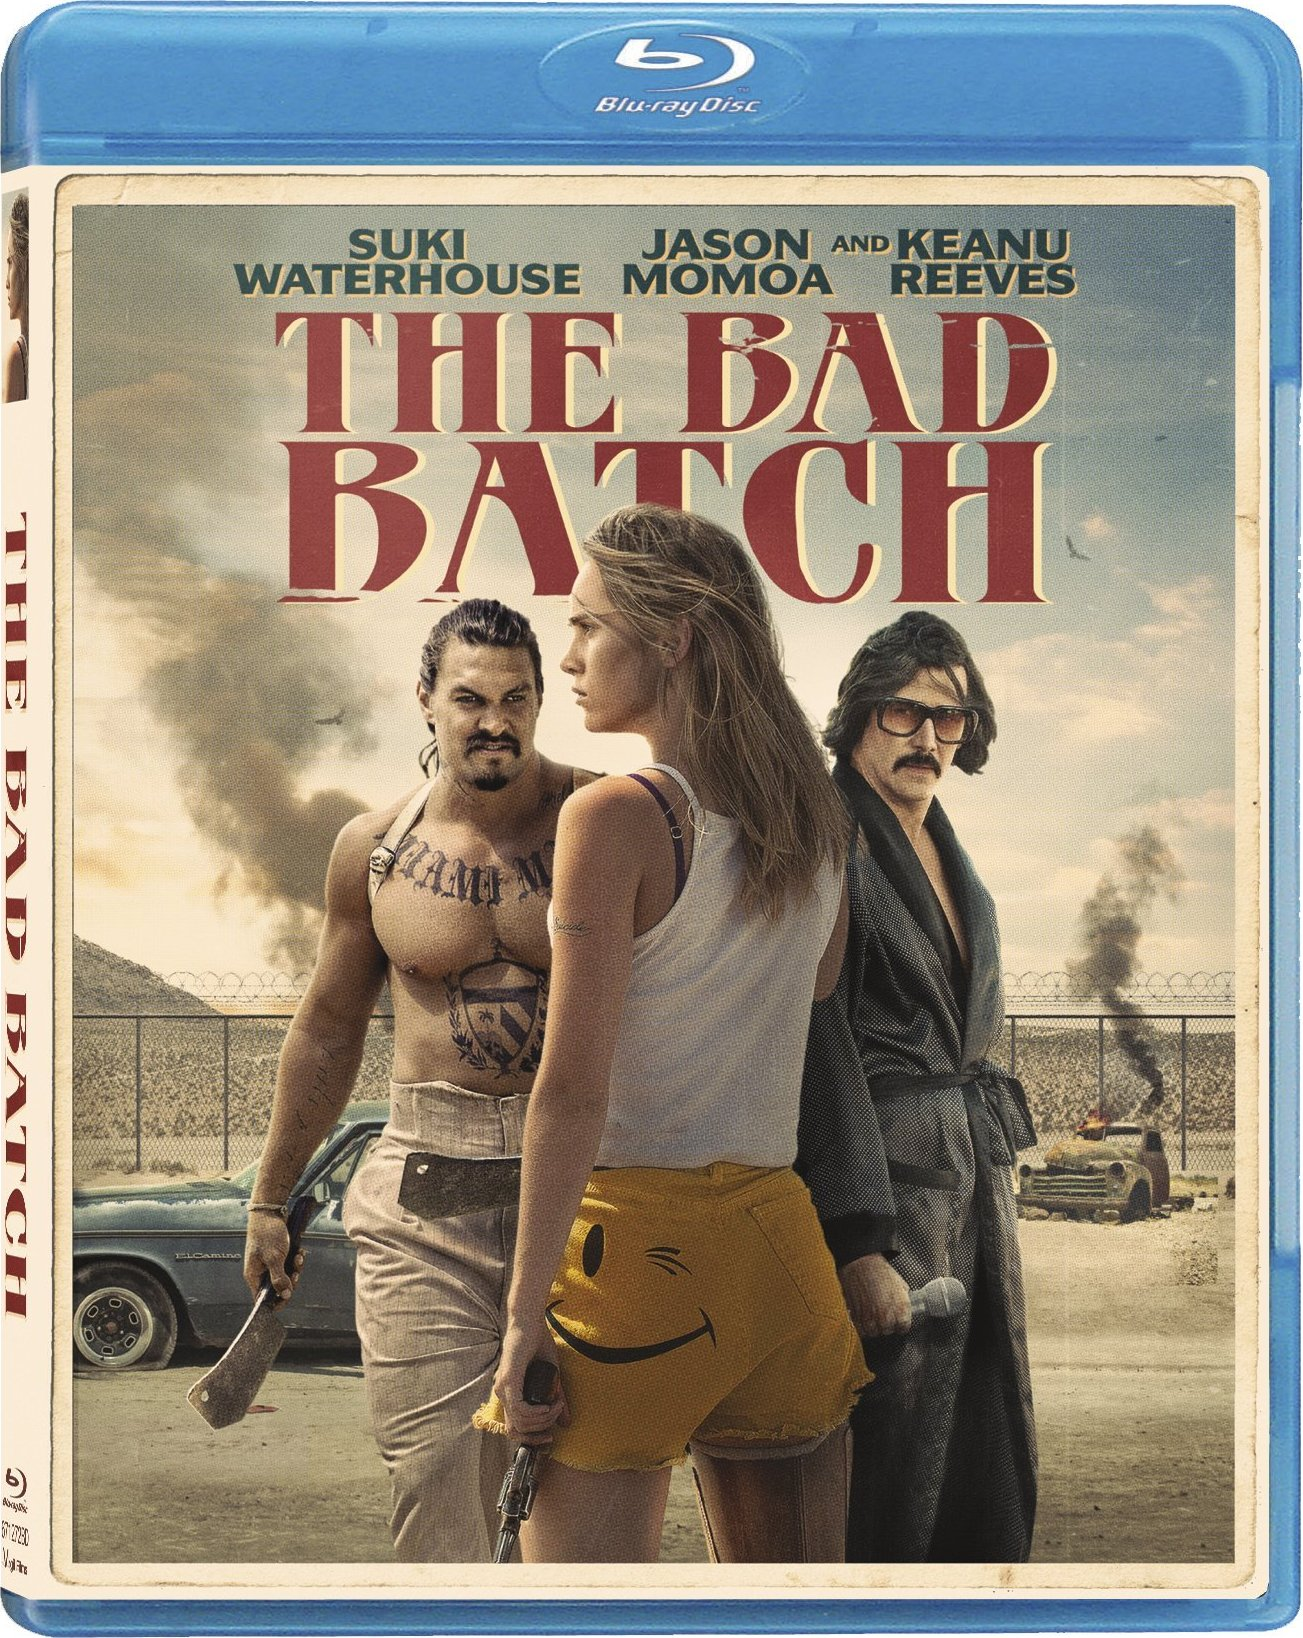 The Bad Batch (2016) poster image